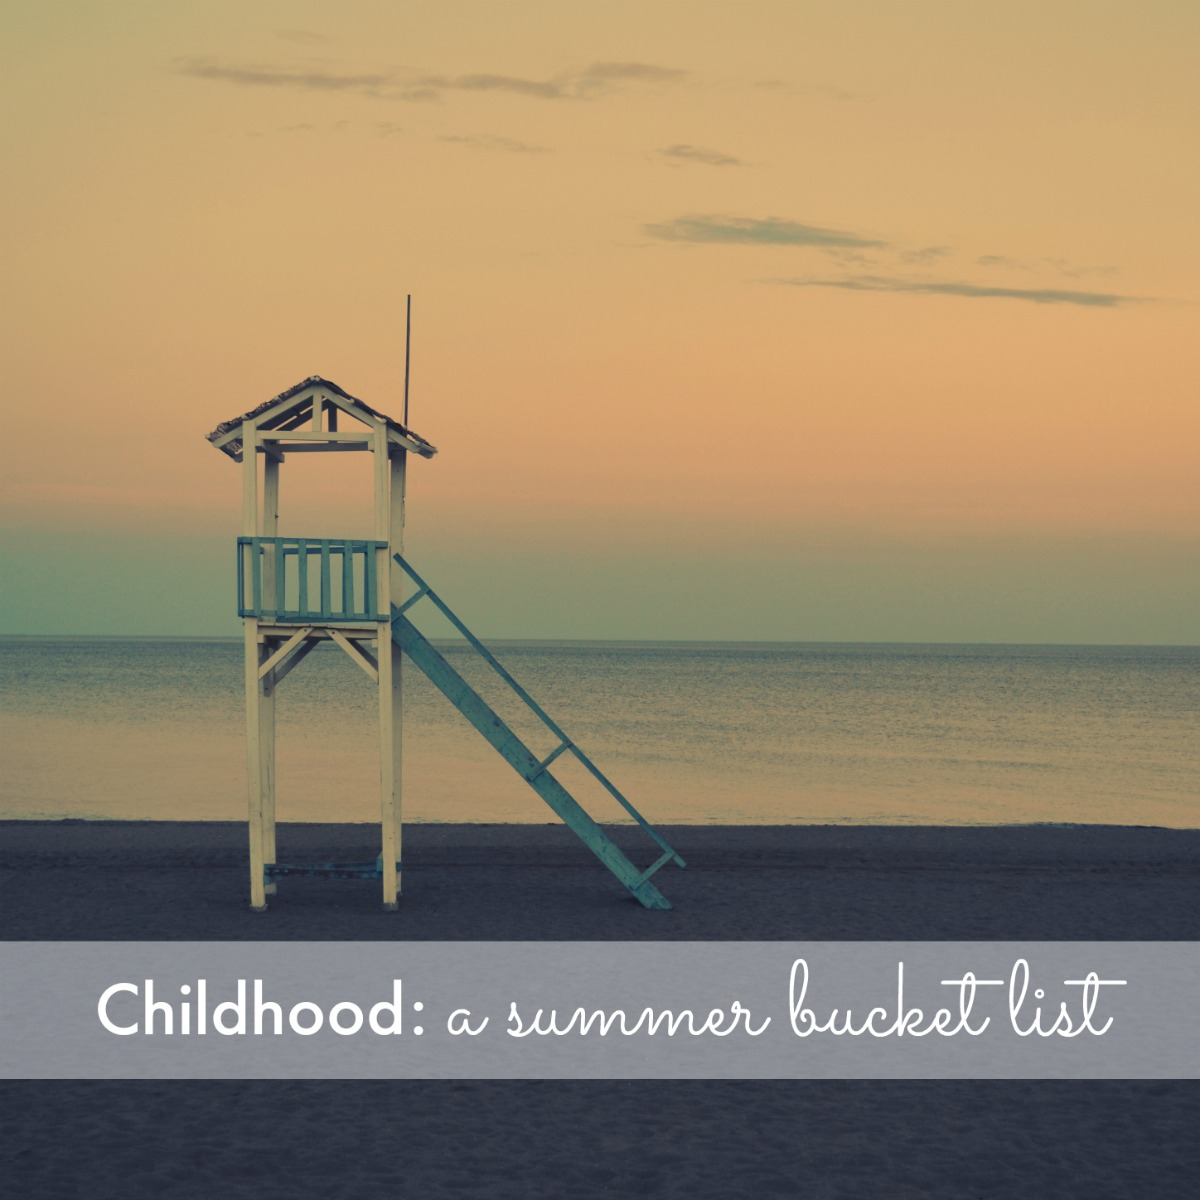 Childhood: a summer bucket list